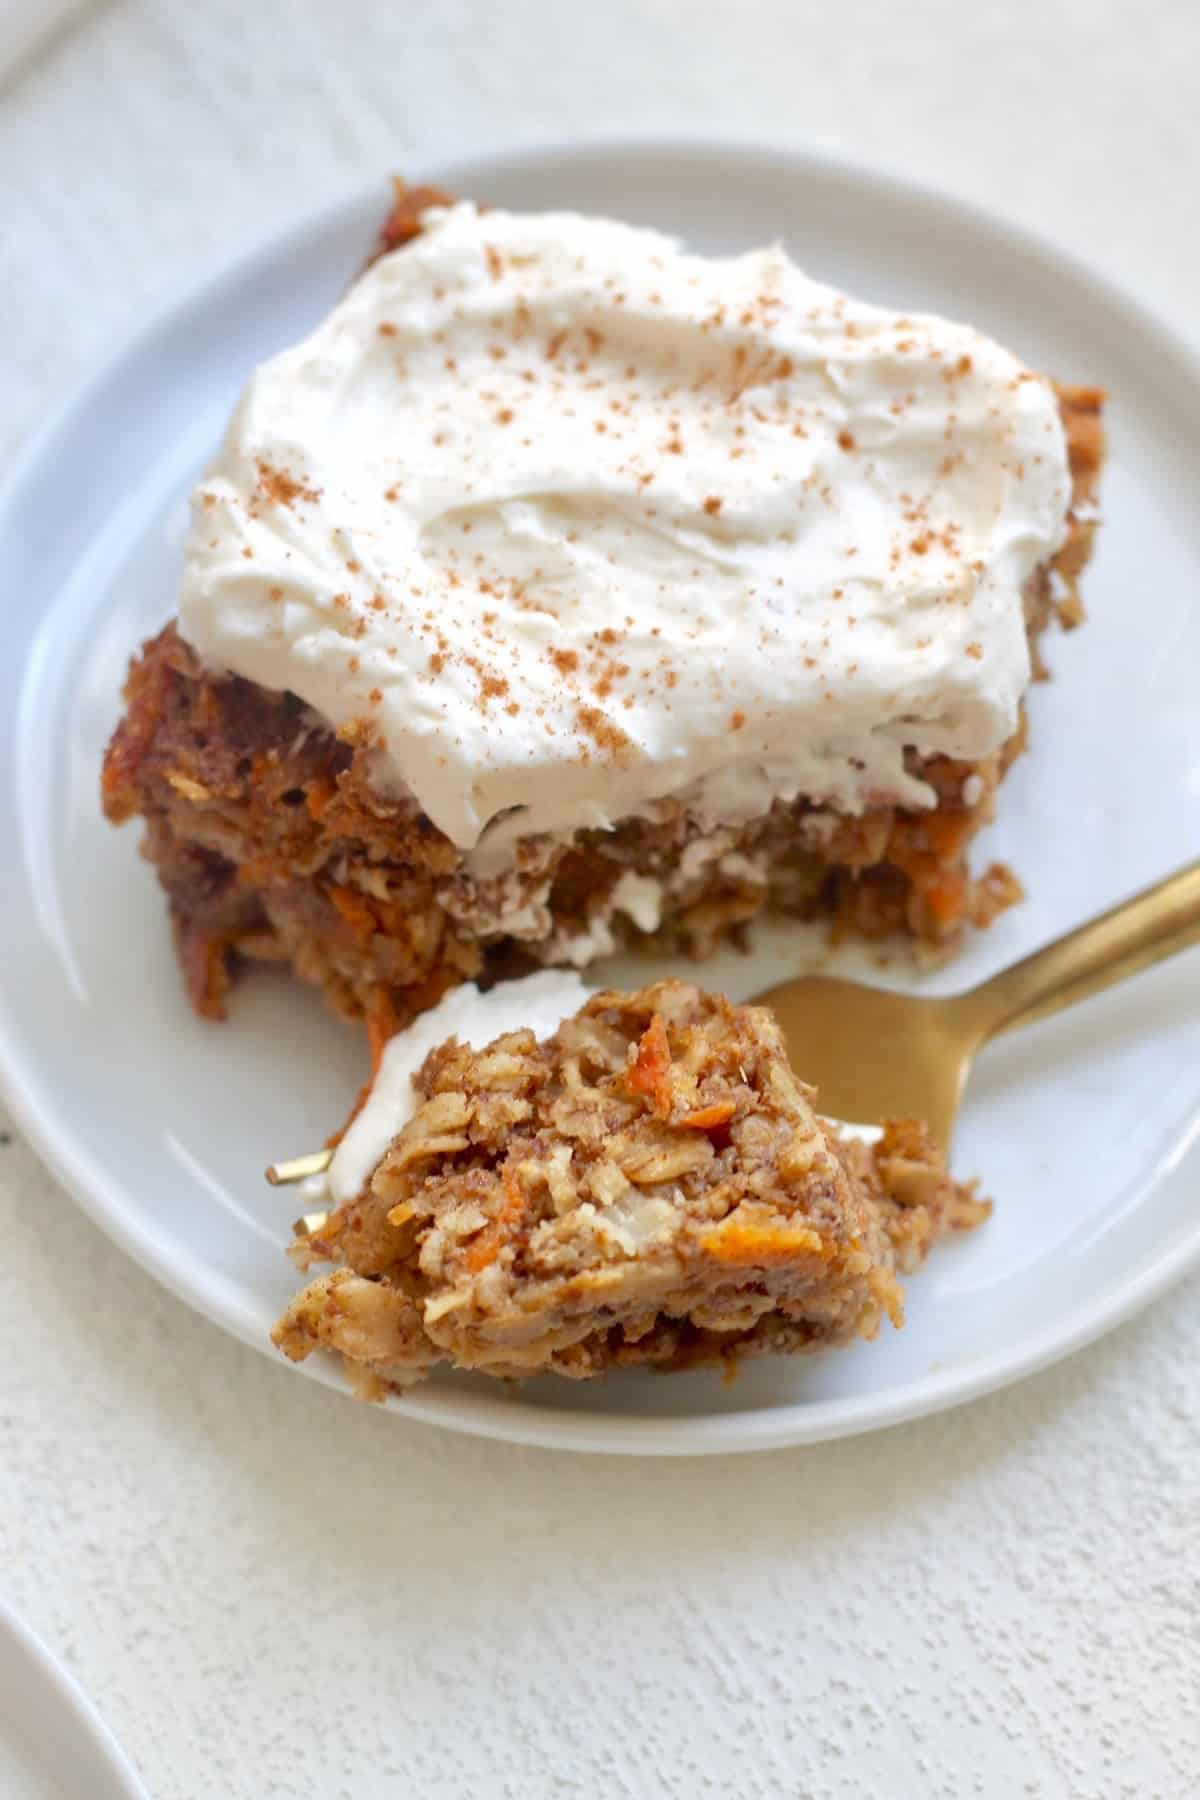 carrot cake with cream cheese frosting on plate with gold fork